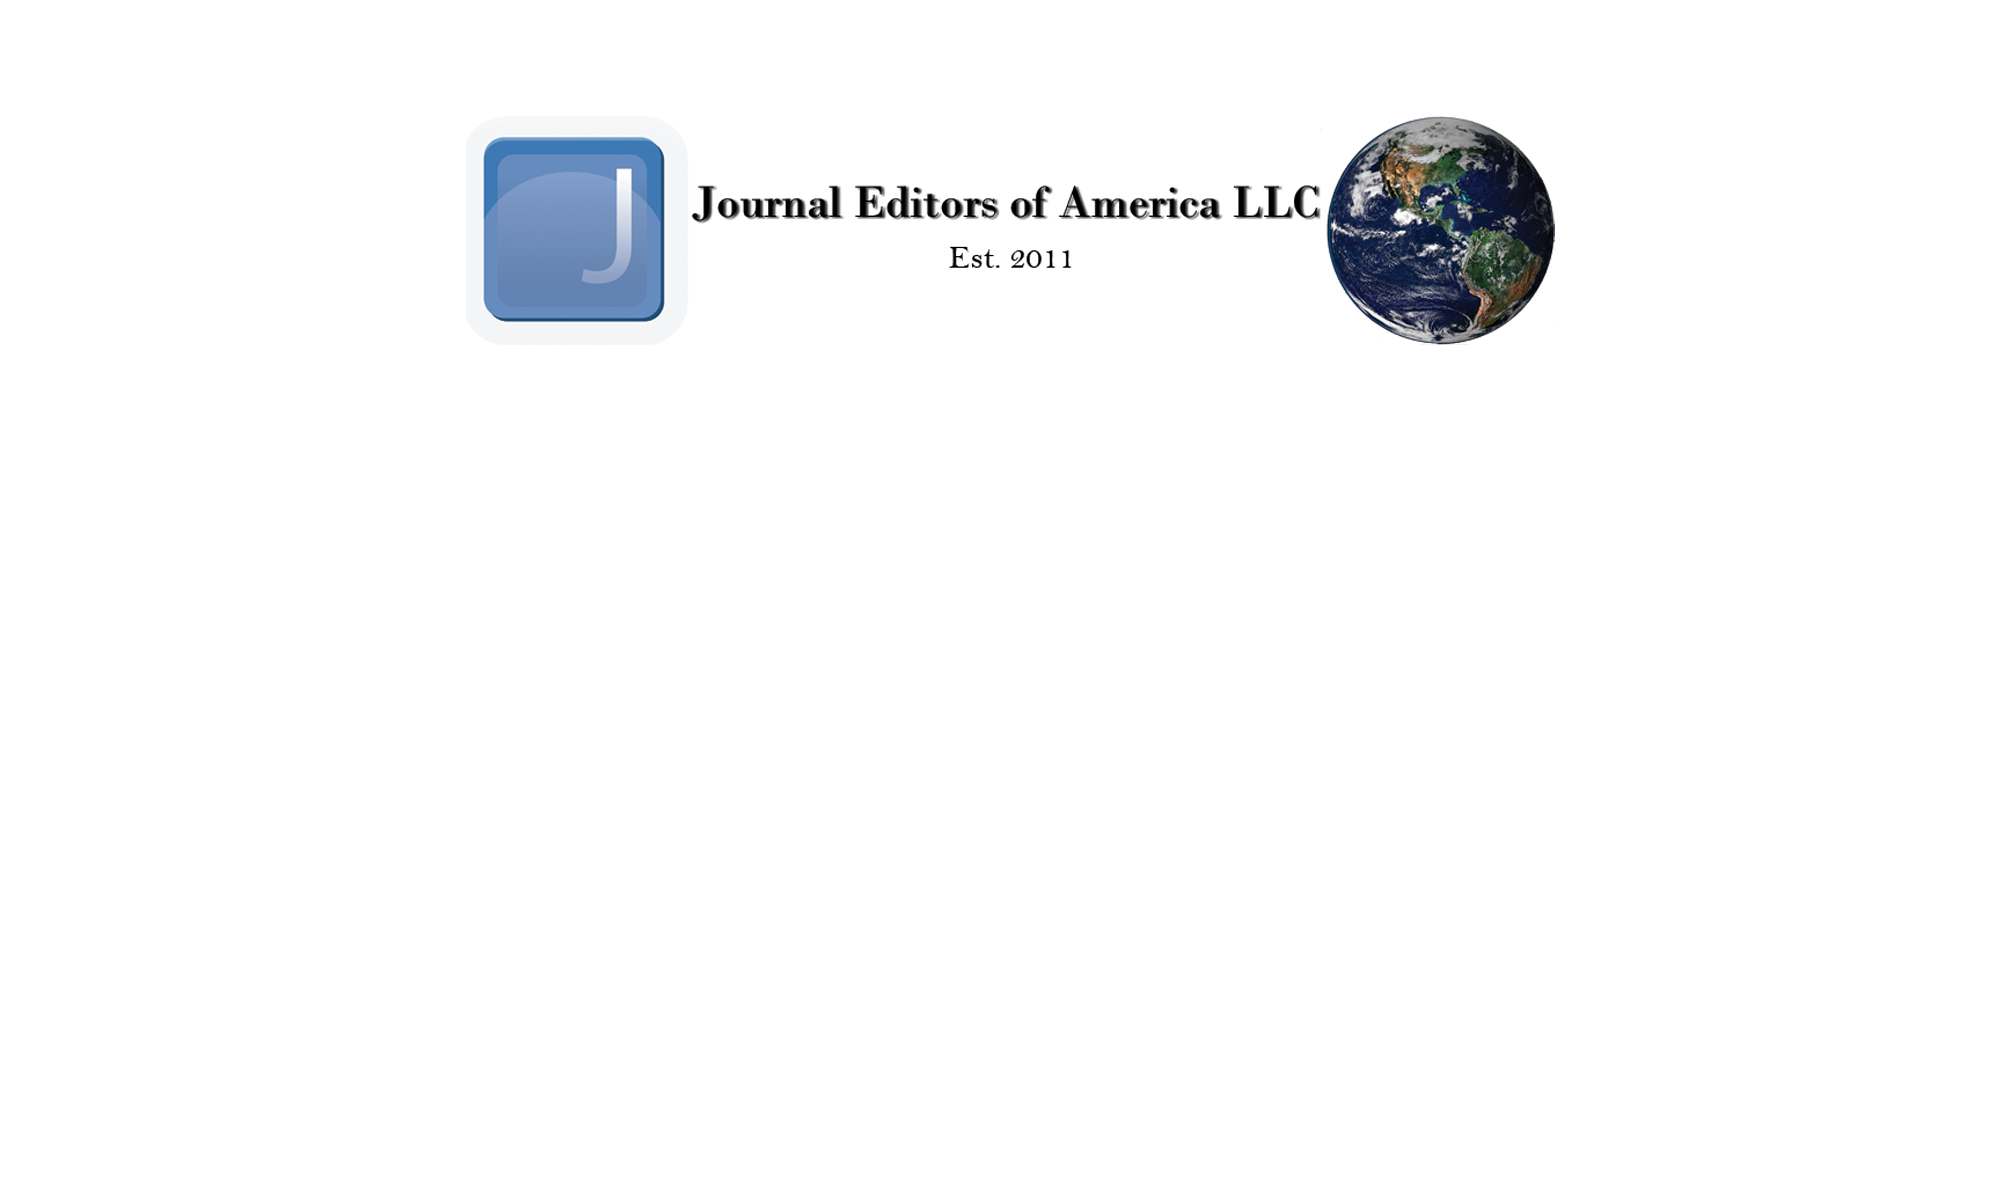 Journal Editors of America